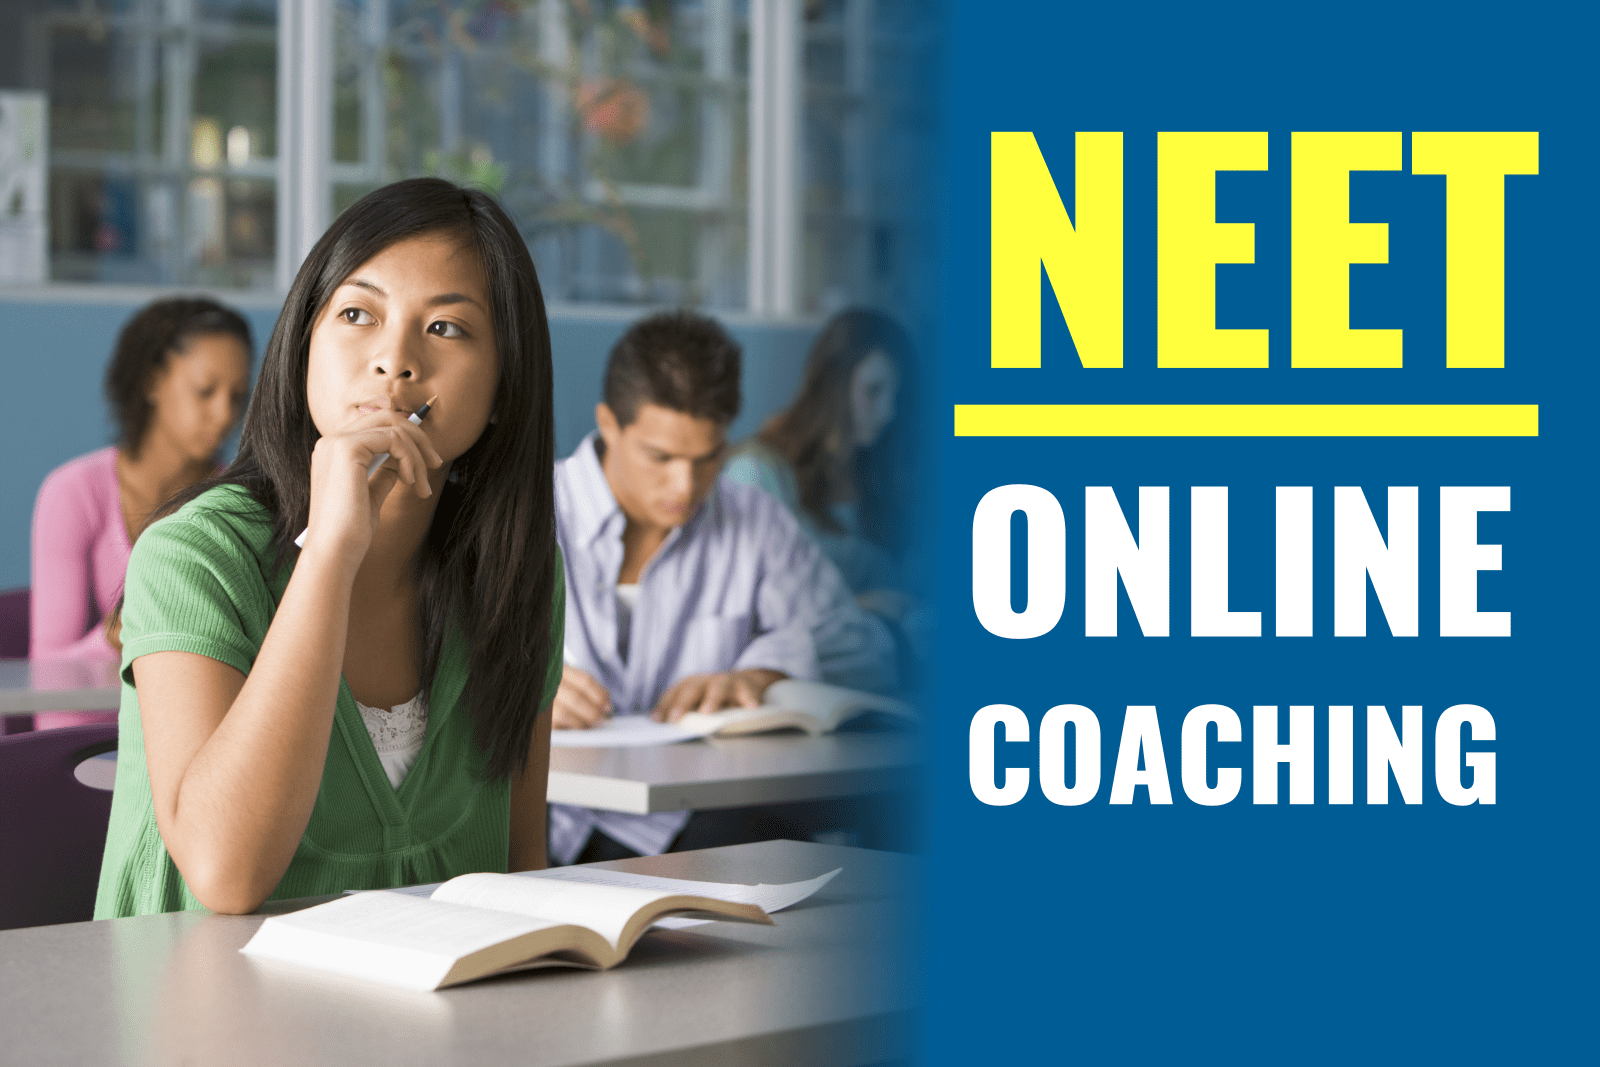 neet-online-coaching-featured-image